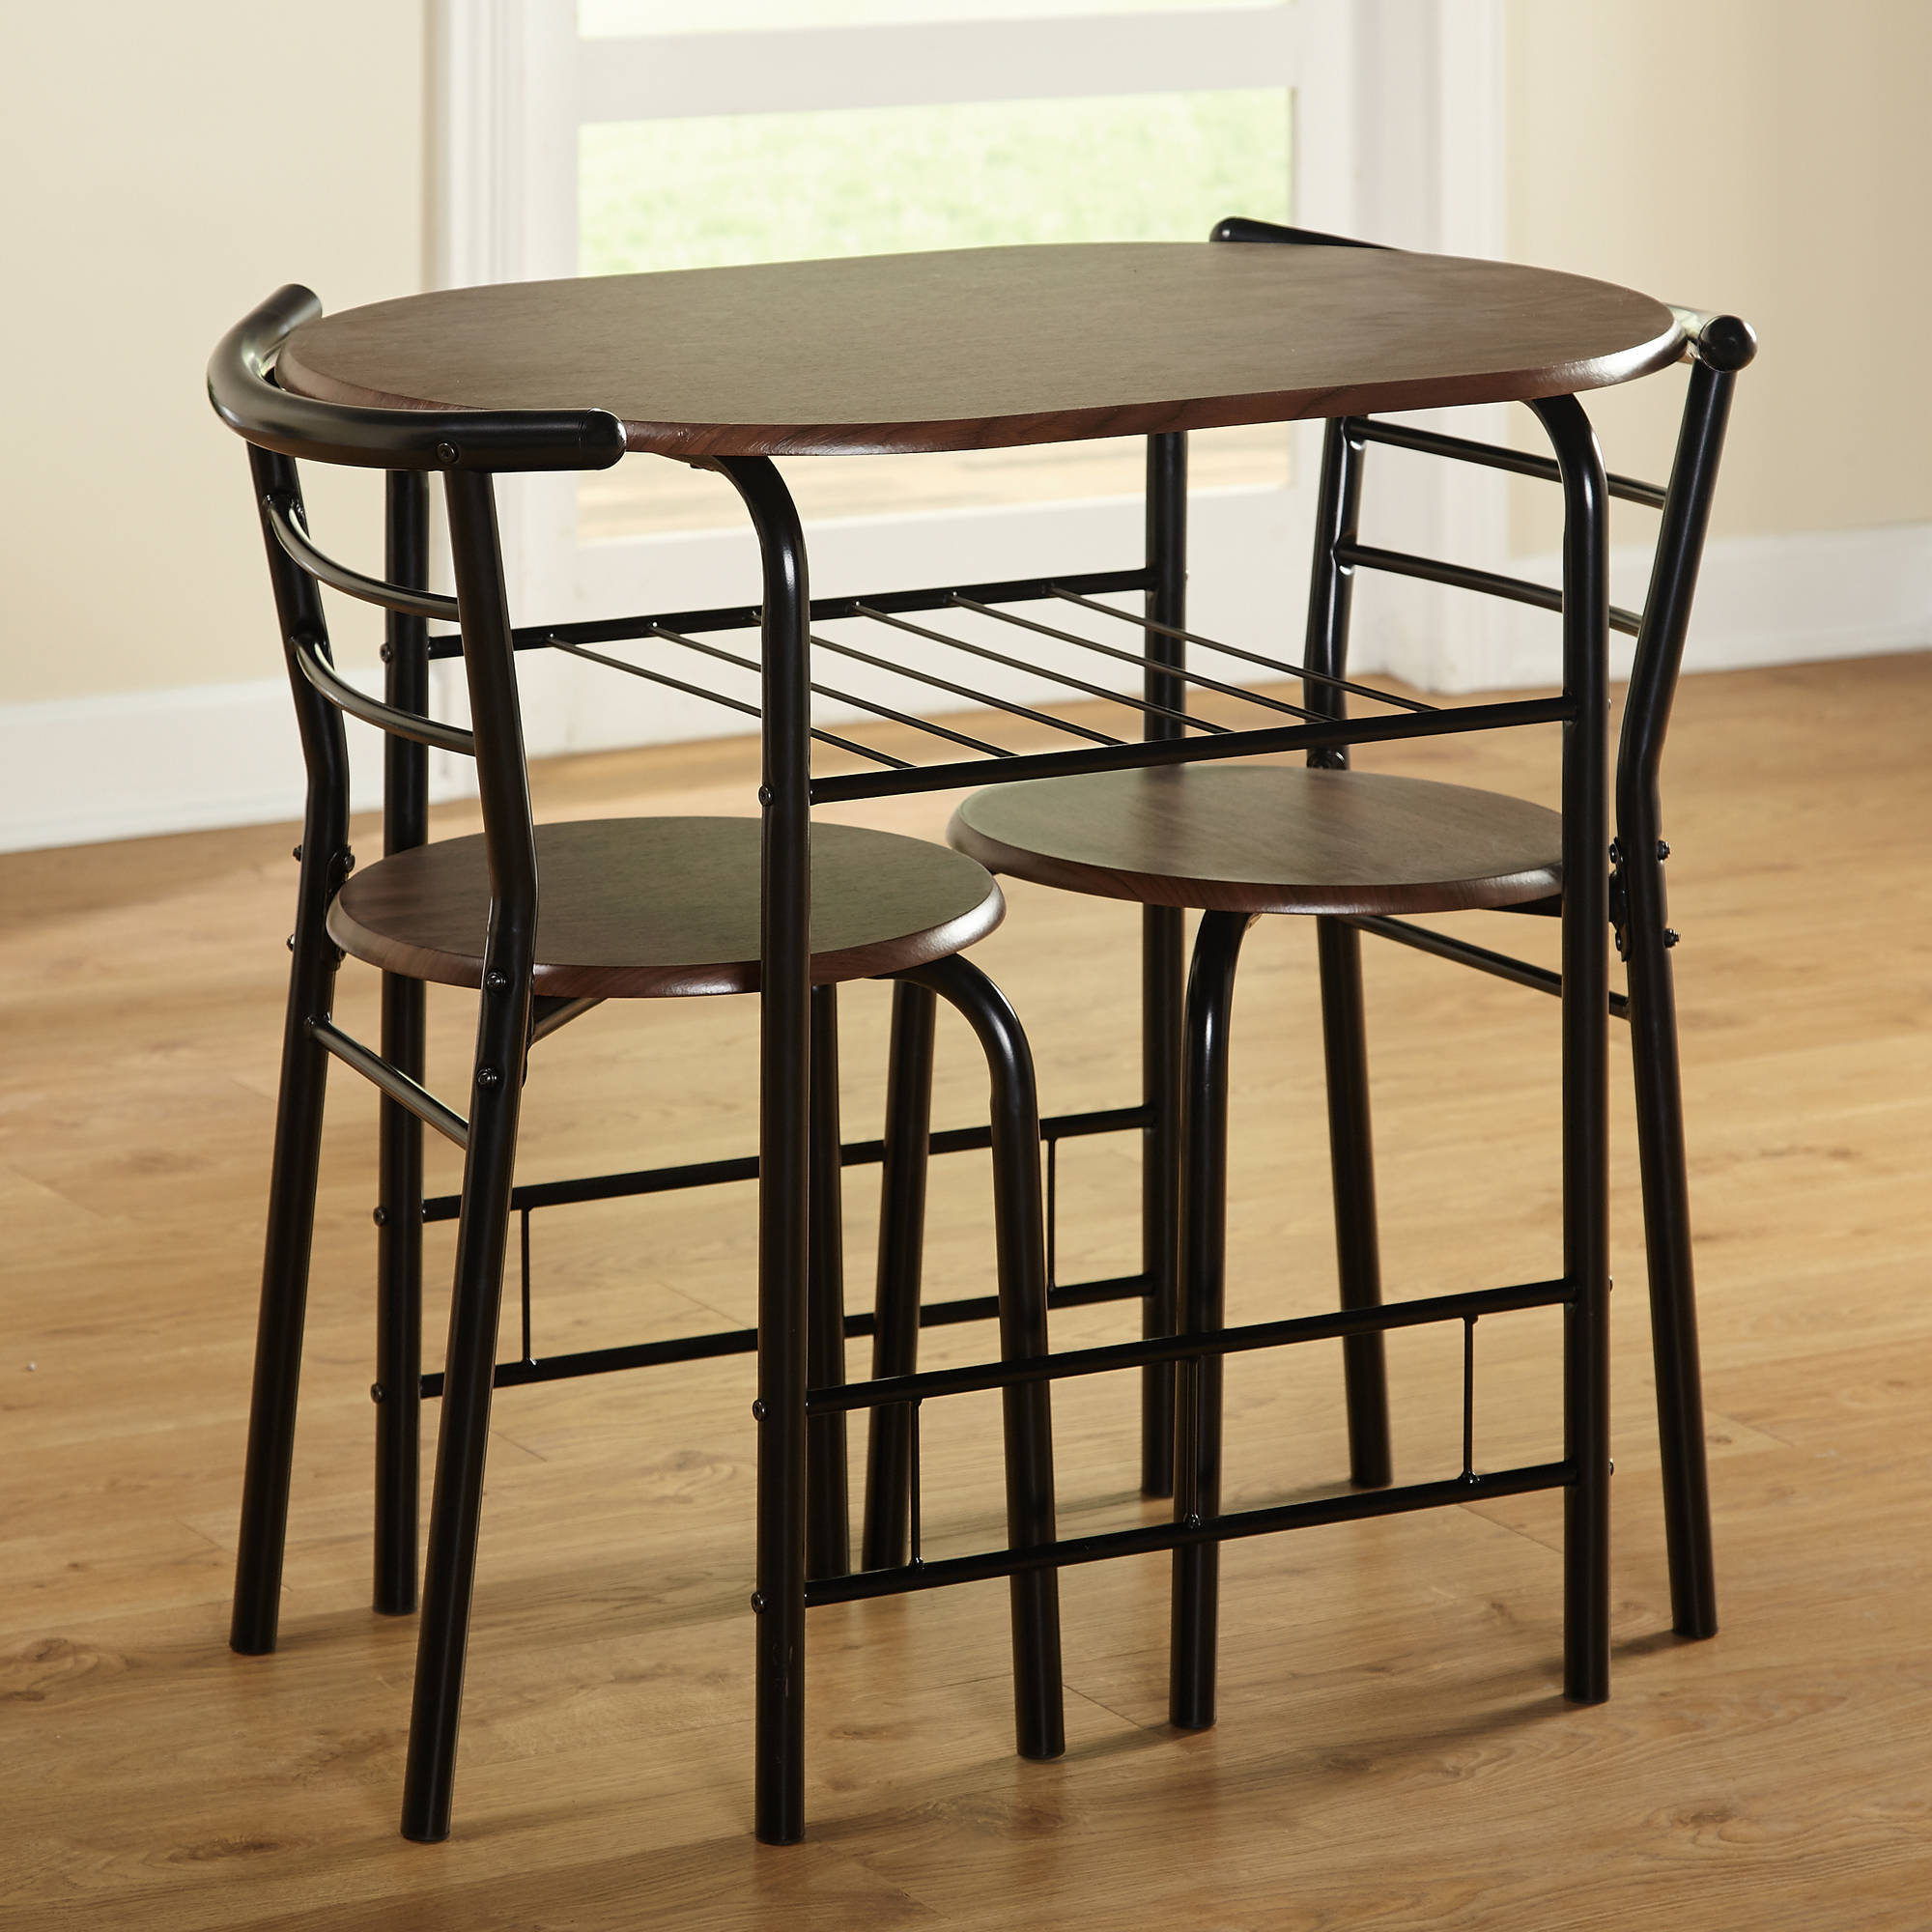 Inspiration about Most Recent Tms 3 Piece Bistro Dining Set – Walmart Pertaining To Bate Red Retro 3 Piece Dining Sets (#3 of 20)